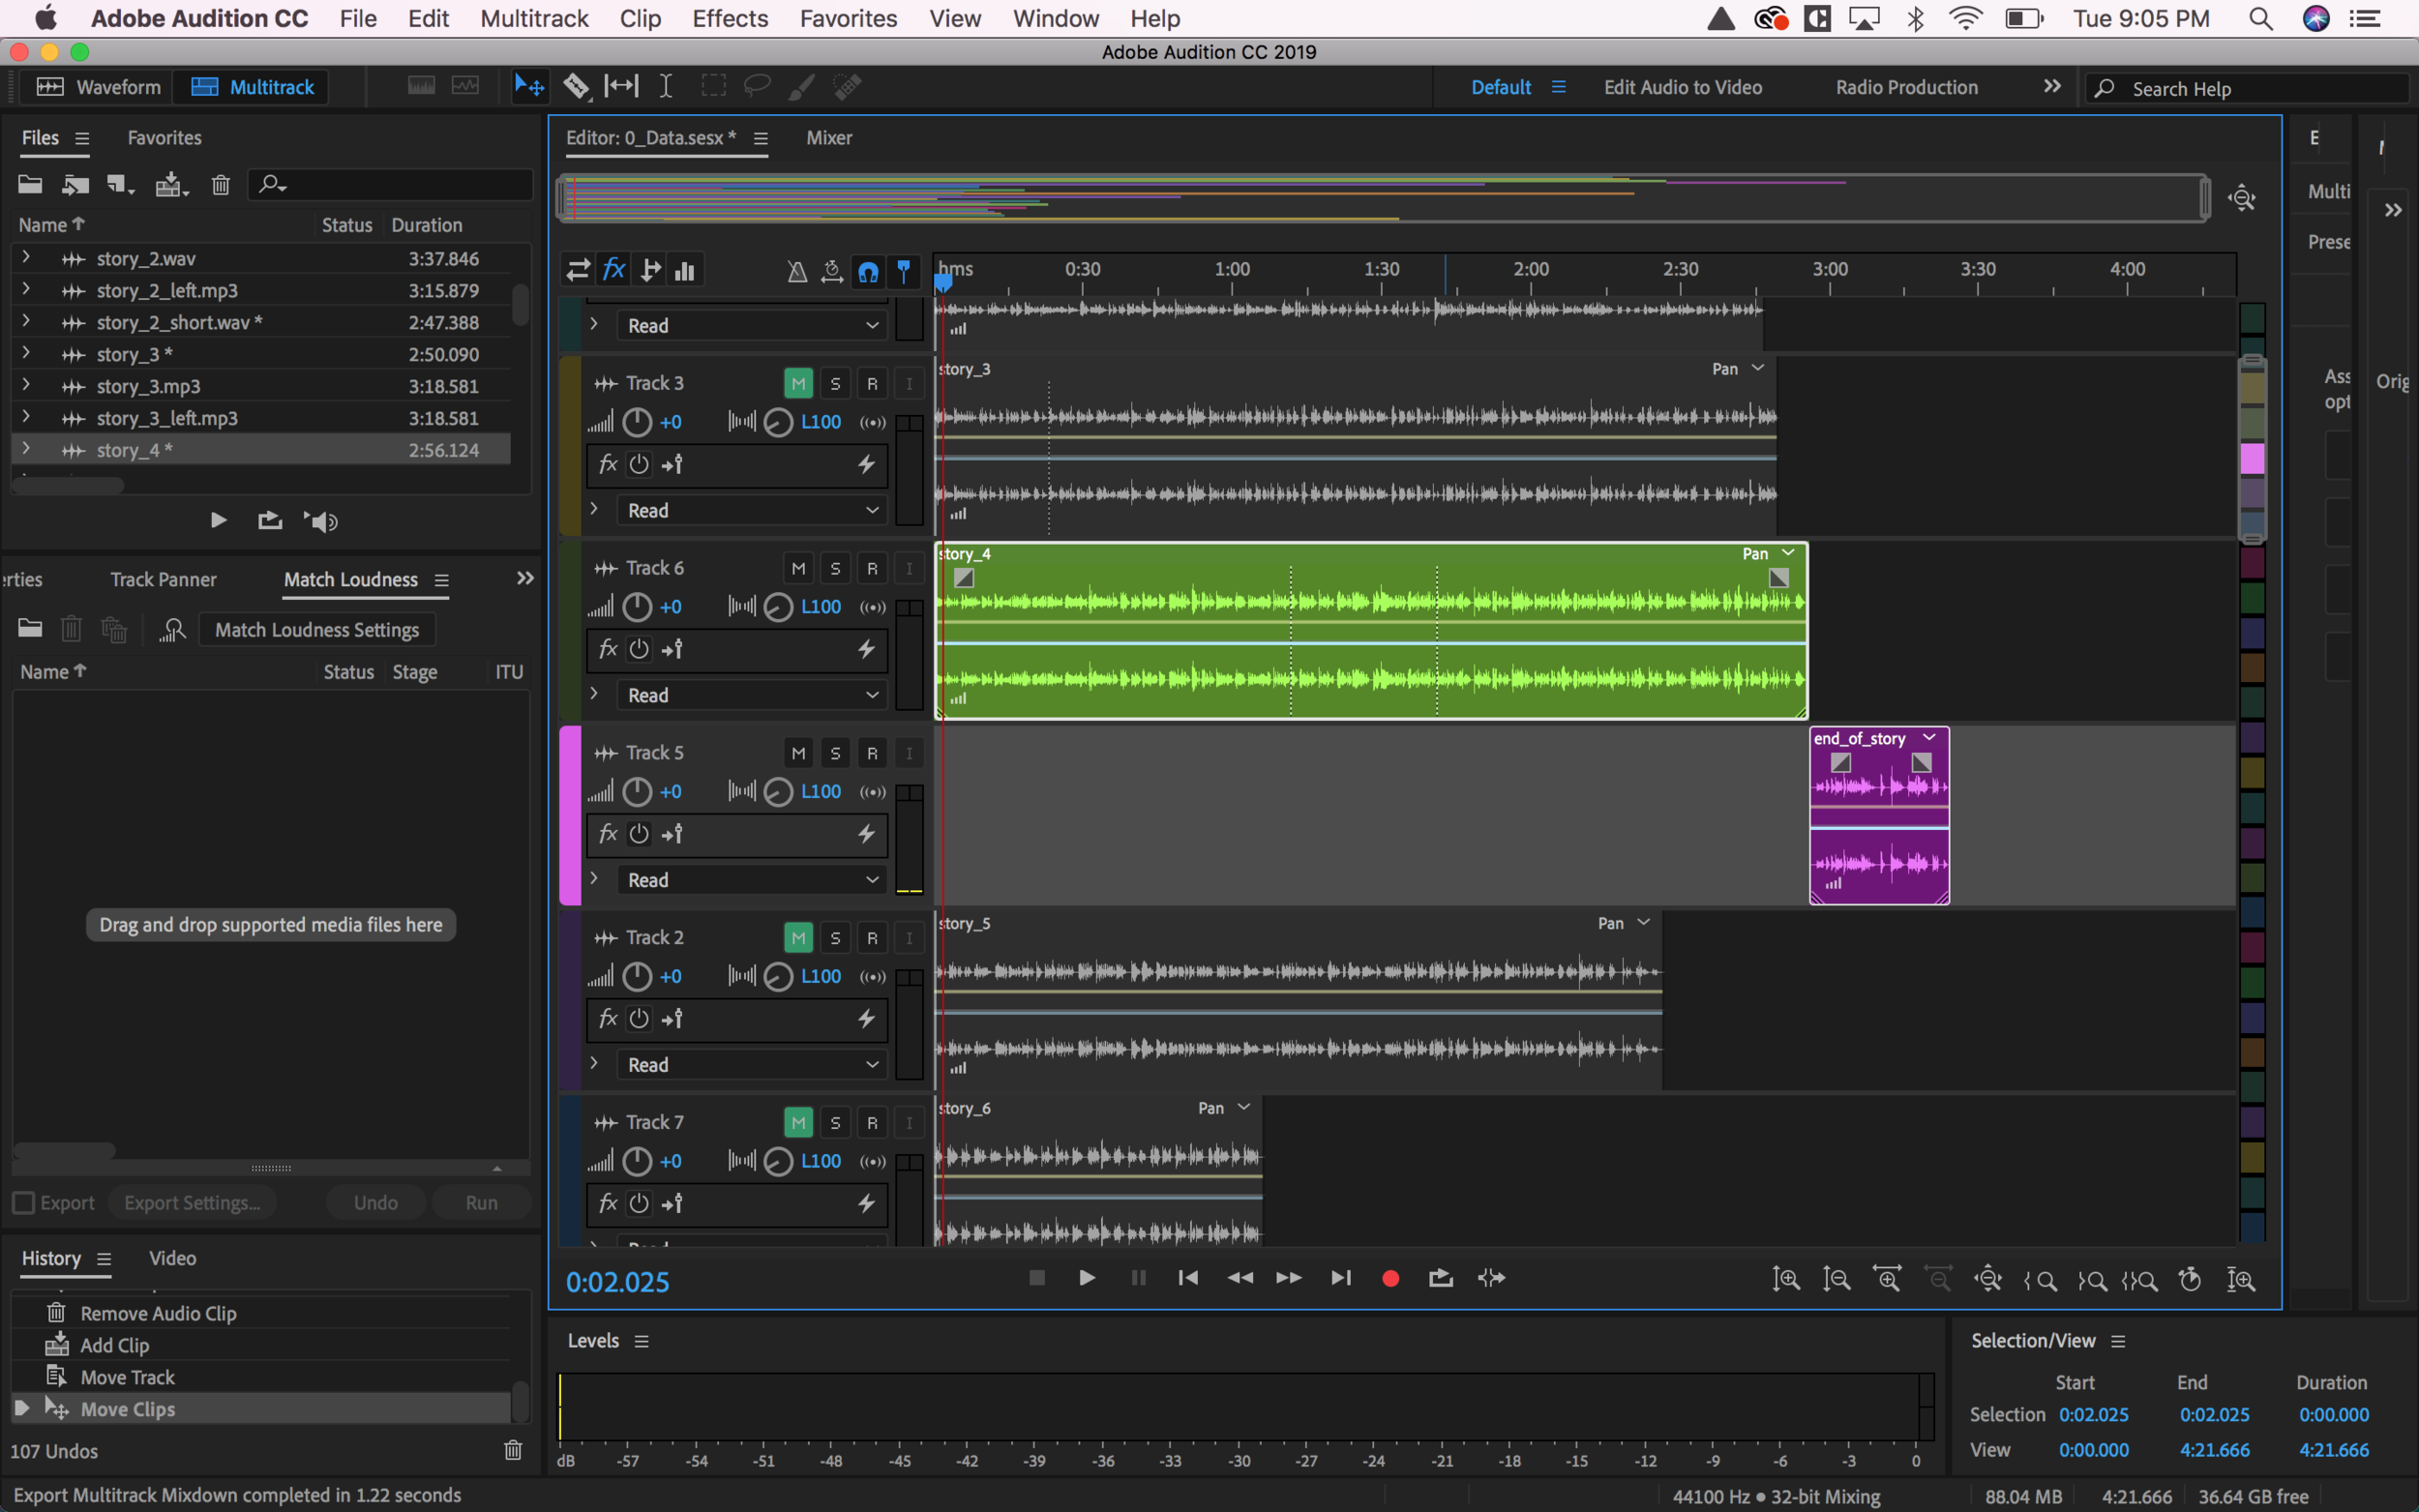 Editing sound in Adobe Audition